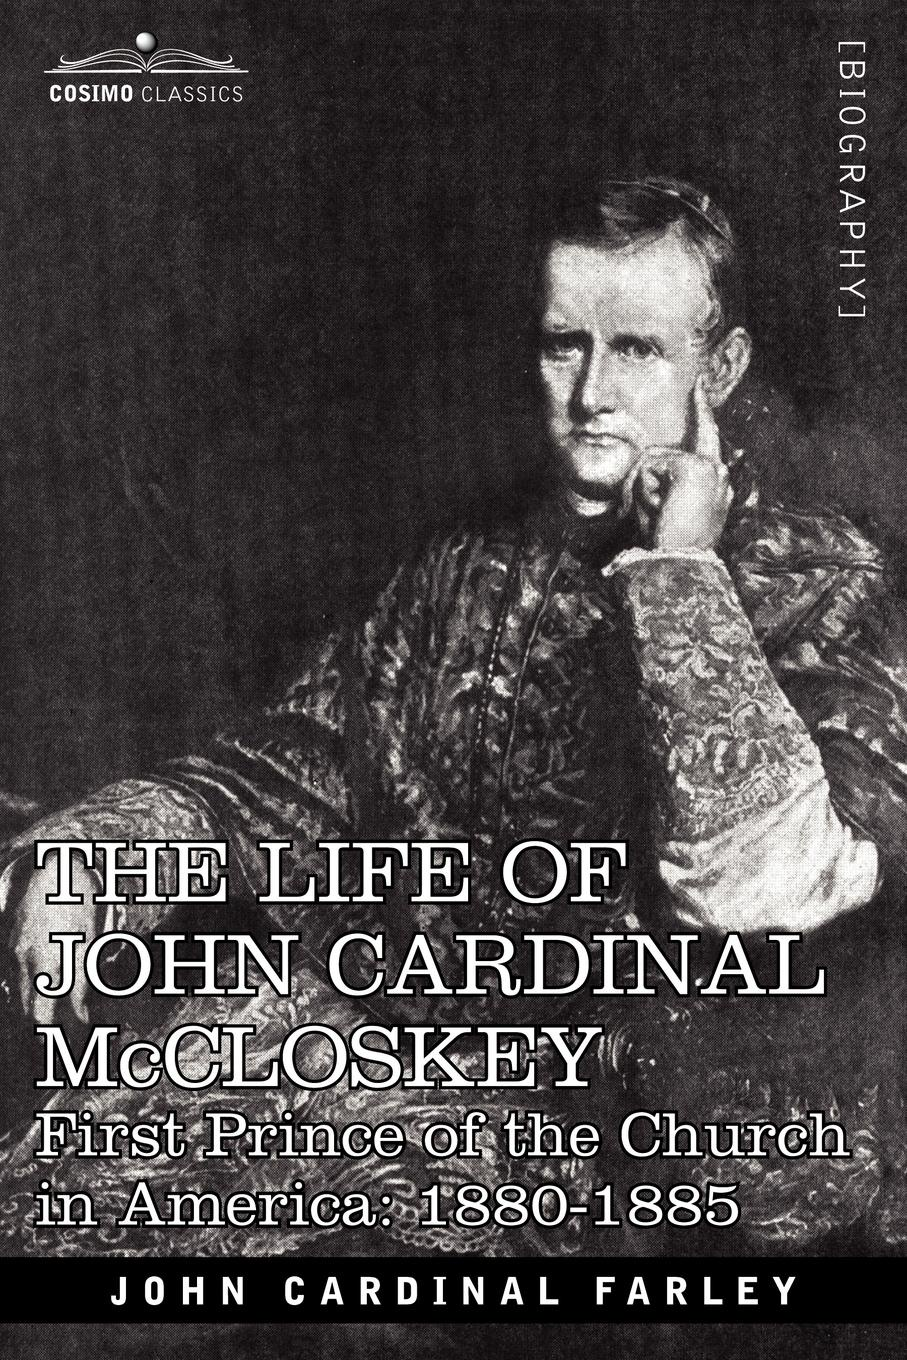 John Cardinal Farley The Life of John Cardinal McCloskey. First Prince of the Church in America: 1880-1885 кружка суповая sistema microwave цвет красный 900 мл 1141